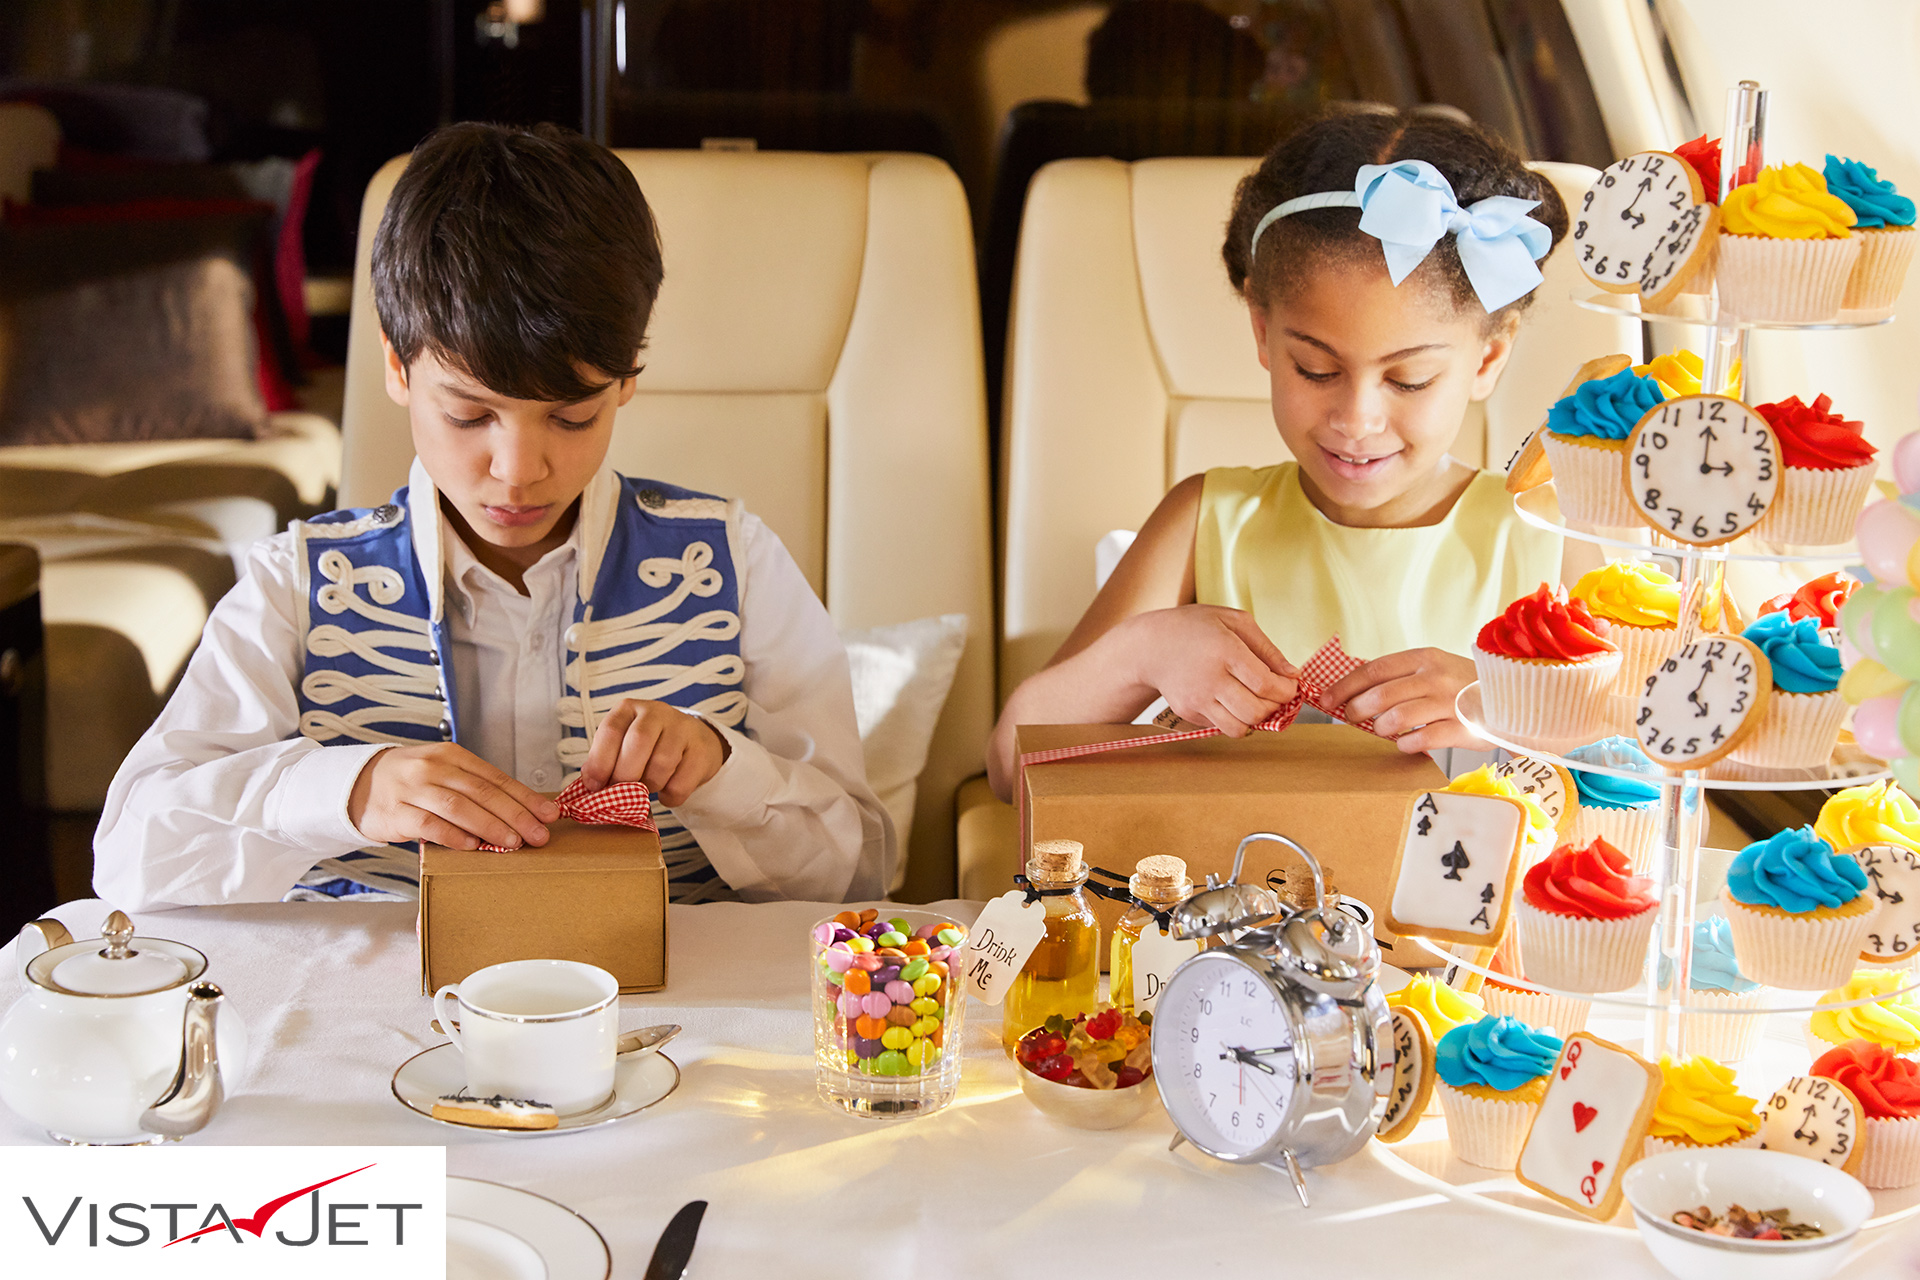 Children doing craft on plane